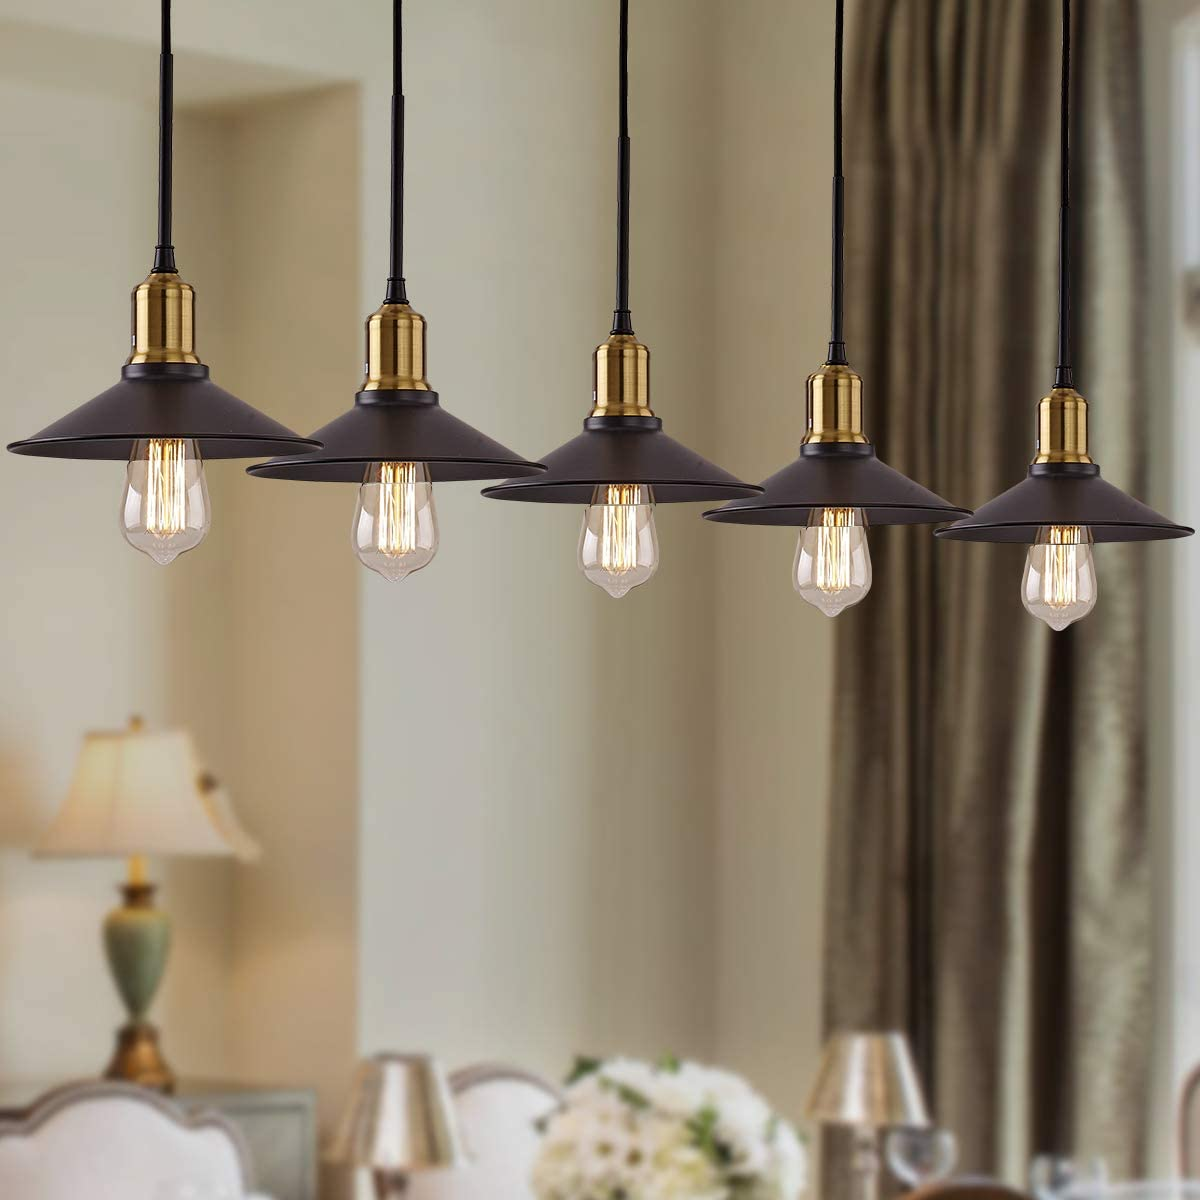 KMM Pendant Lighting 5 Lamp Black Classic Retro Pendant Lighting E12 Suitable for Bedroom Dining Room Bar Aisle Dining Room Widely Used in Pendant Lighting for Kitchen Island